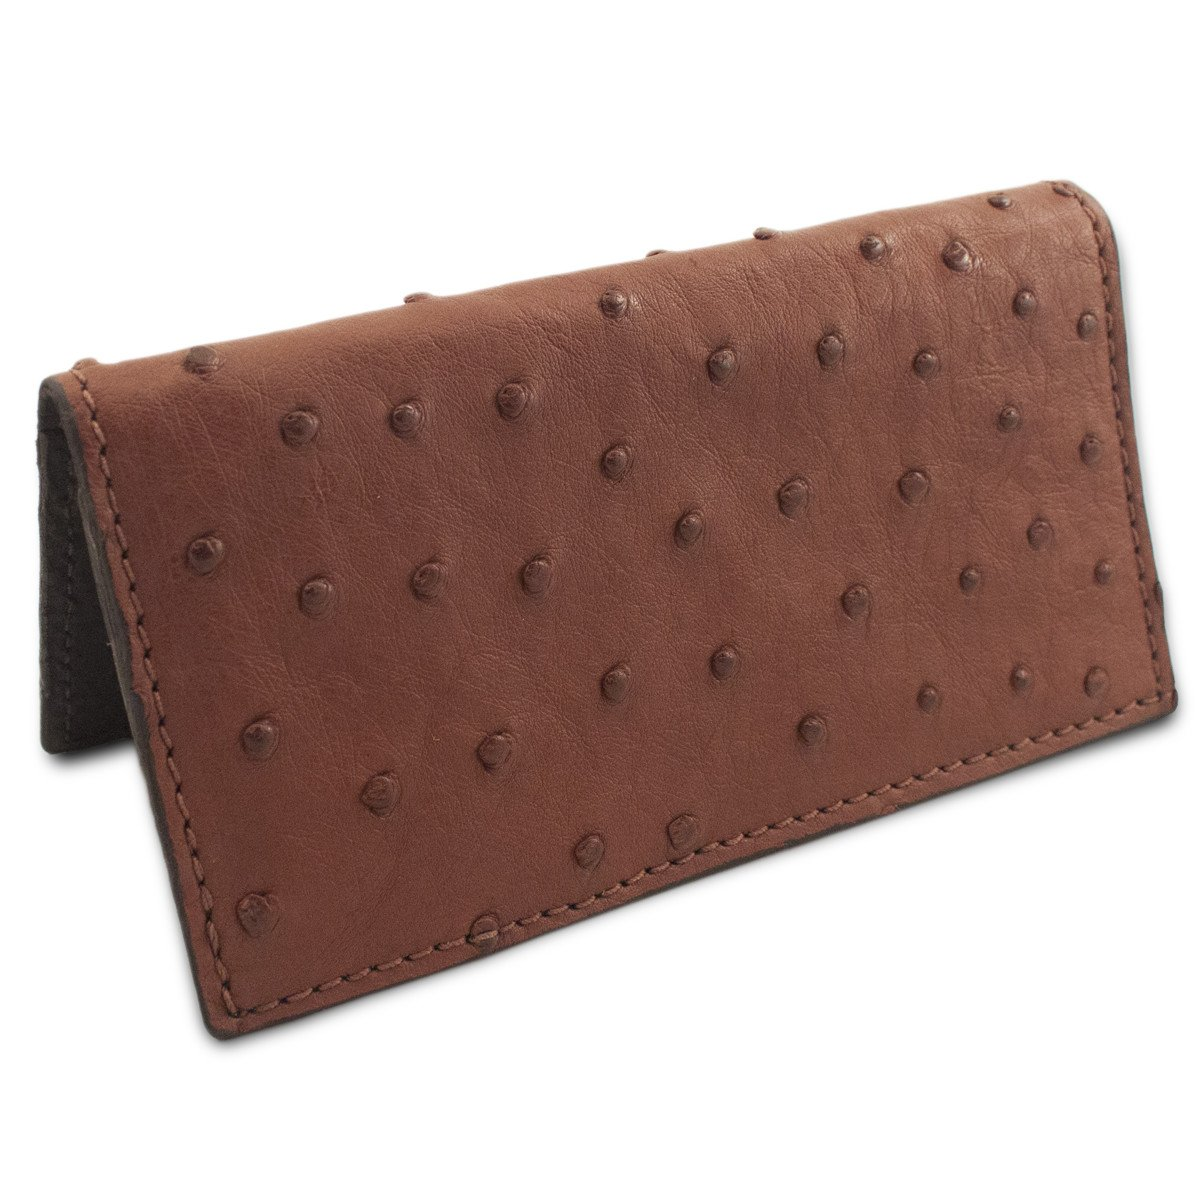 Handmade Brown Genuine Ostrich Skin Leather Checkbook Cover by Yoder Leather Company